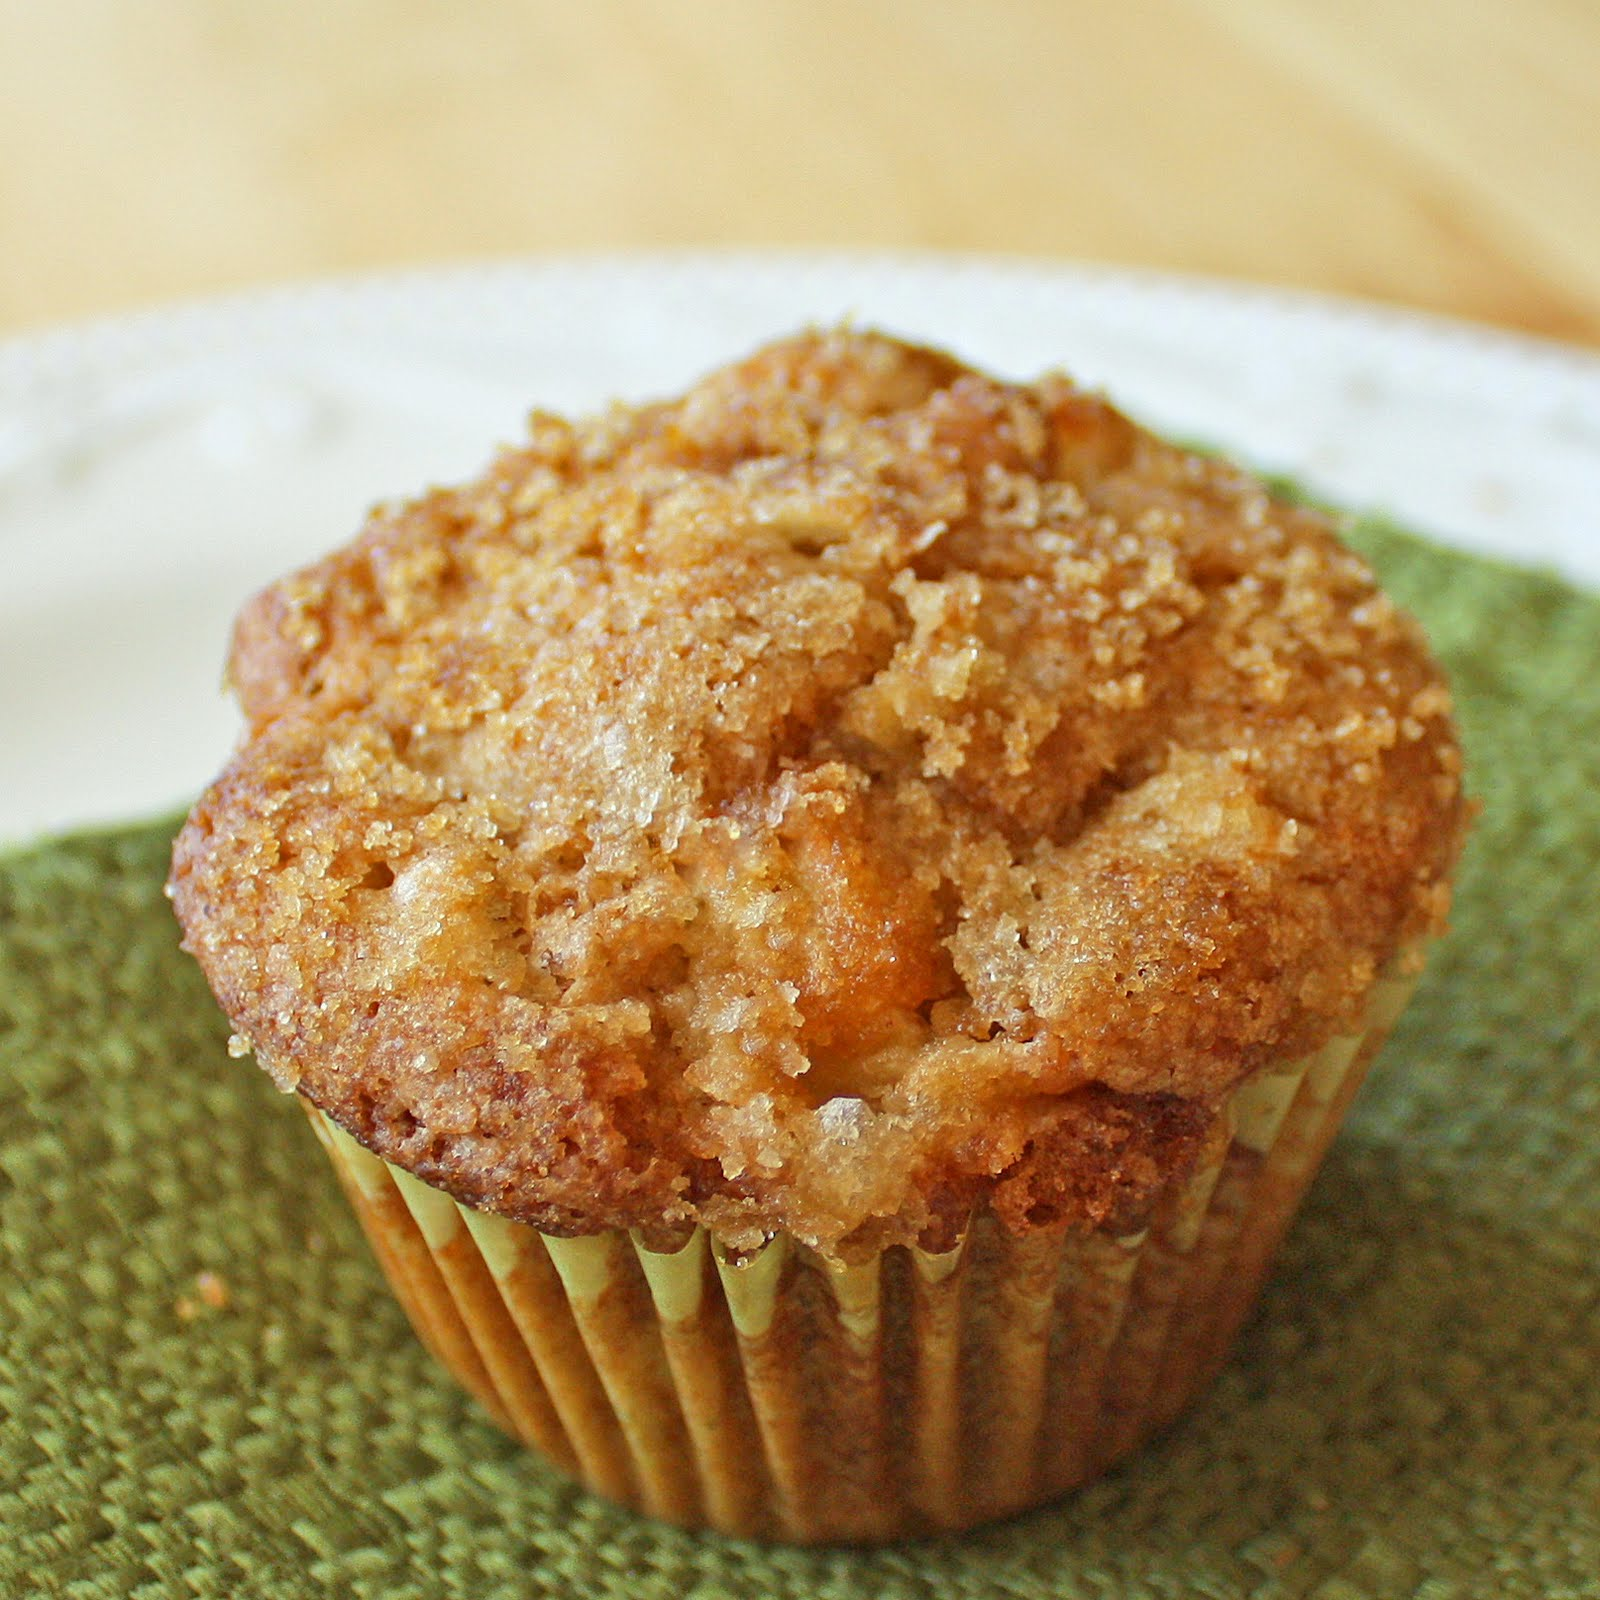 apple muffins print serves 18 muffins ingredients 2 cups sugar